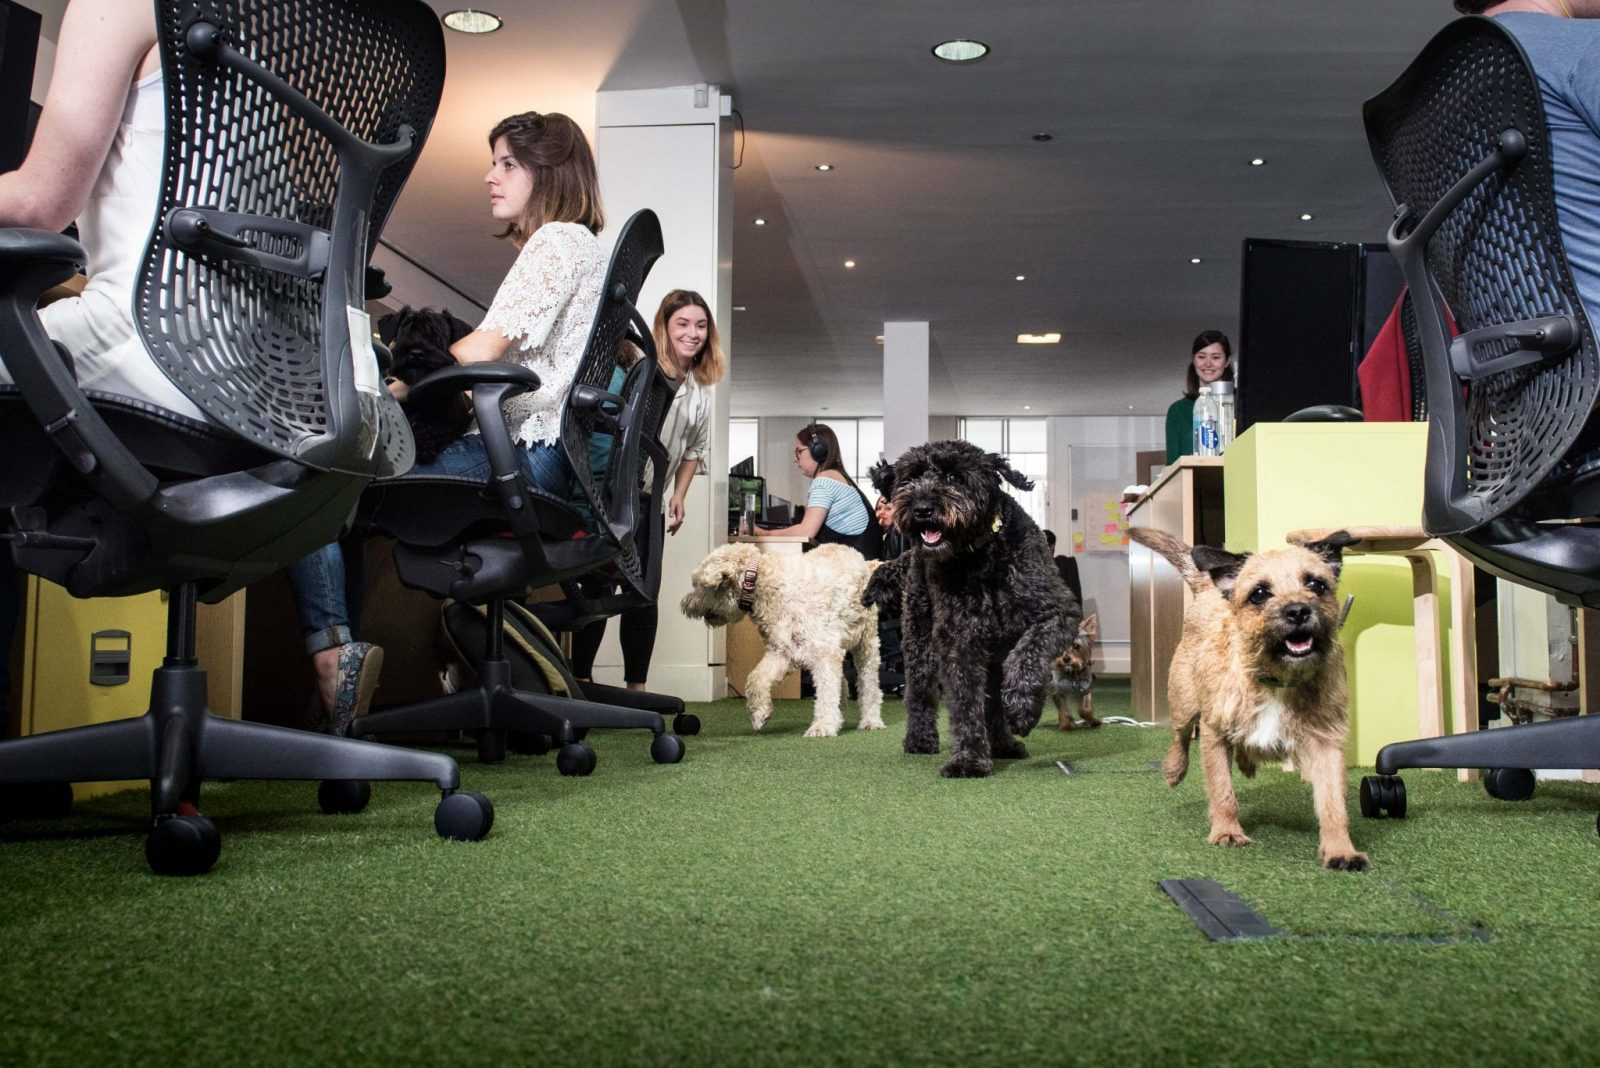 Thursday 23rd June 2016: Inside the HQ of tails.com, where it's Bring Your Dog To Work Day everyday. The tailor-made dog food company says that having a dog in the office boosts staff productivity, and according to its Vet Sean McCormack it makes the dogs happier too. For further information please contact Neil Broderick at Shine Communications on 07850 508 412 or at Neil@shinecom.com PR Handout - free for editorial usage only Copyright: © Mikael Buck / Tails.com